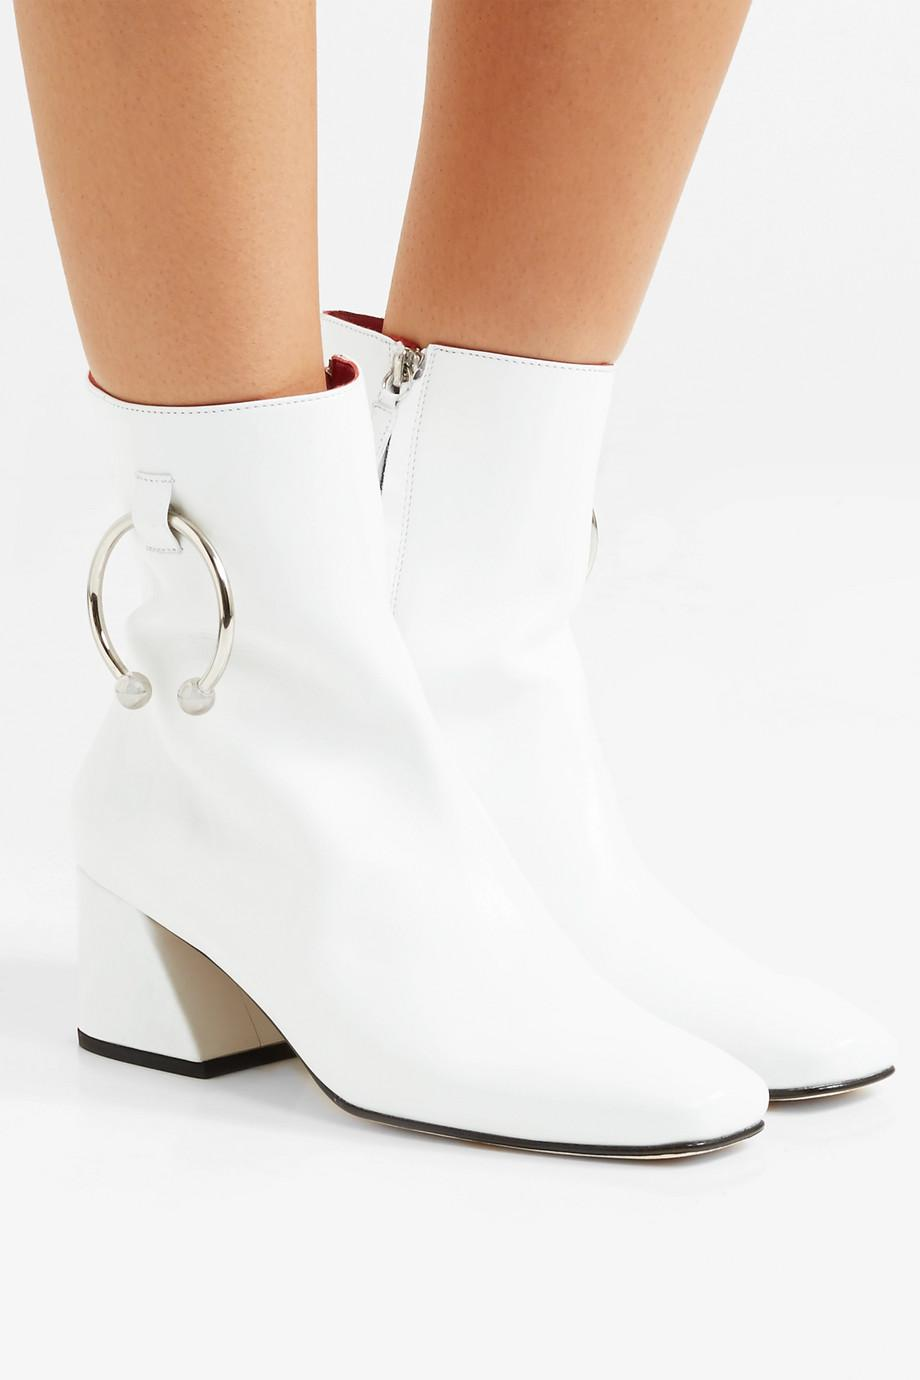 DORATEYMUR Nizip Embellished Leather Ankle Boots Buy Cheap 2018 Prices Cheap Sale Clearance Store aooyk9UU